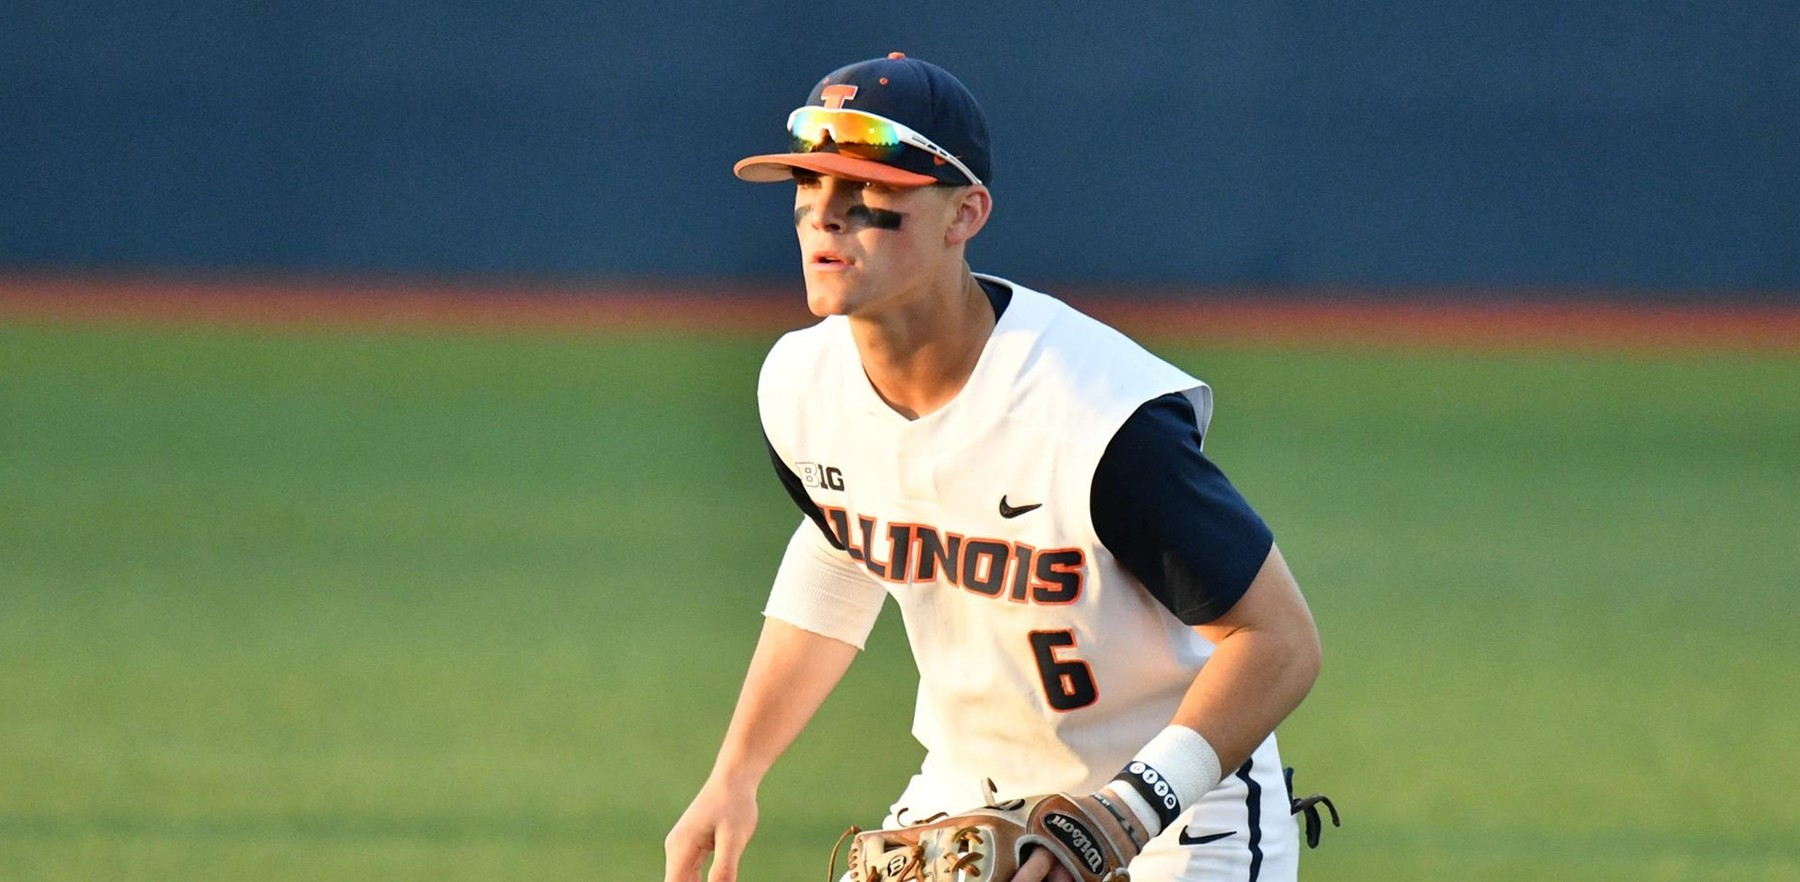 junior Michael Massey playing second base for the Illini